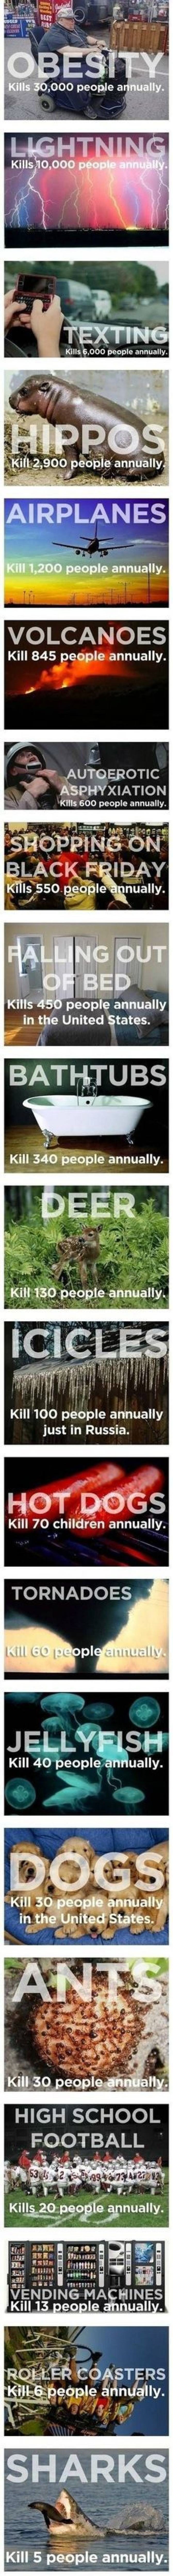 Statistics On Death. Deer Part Is Scary.